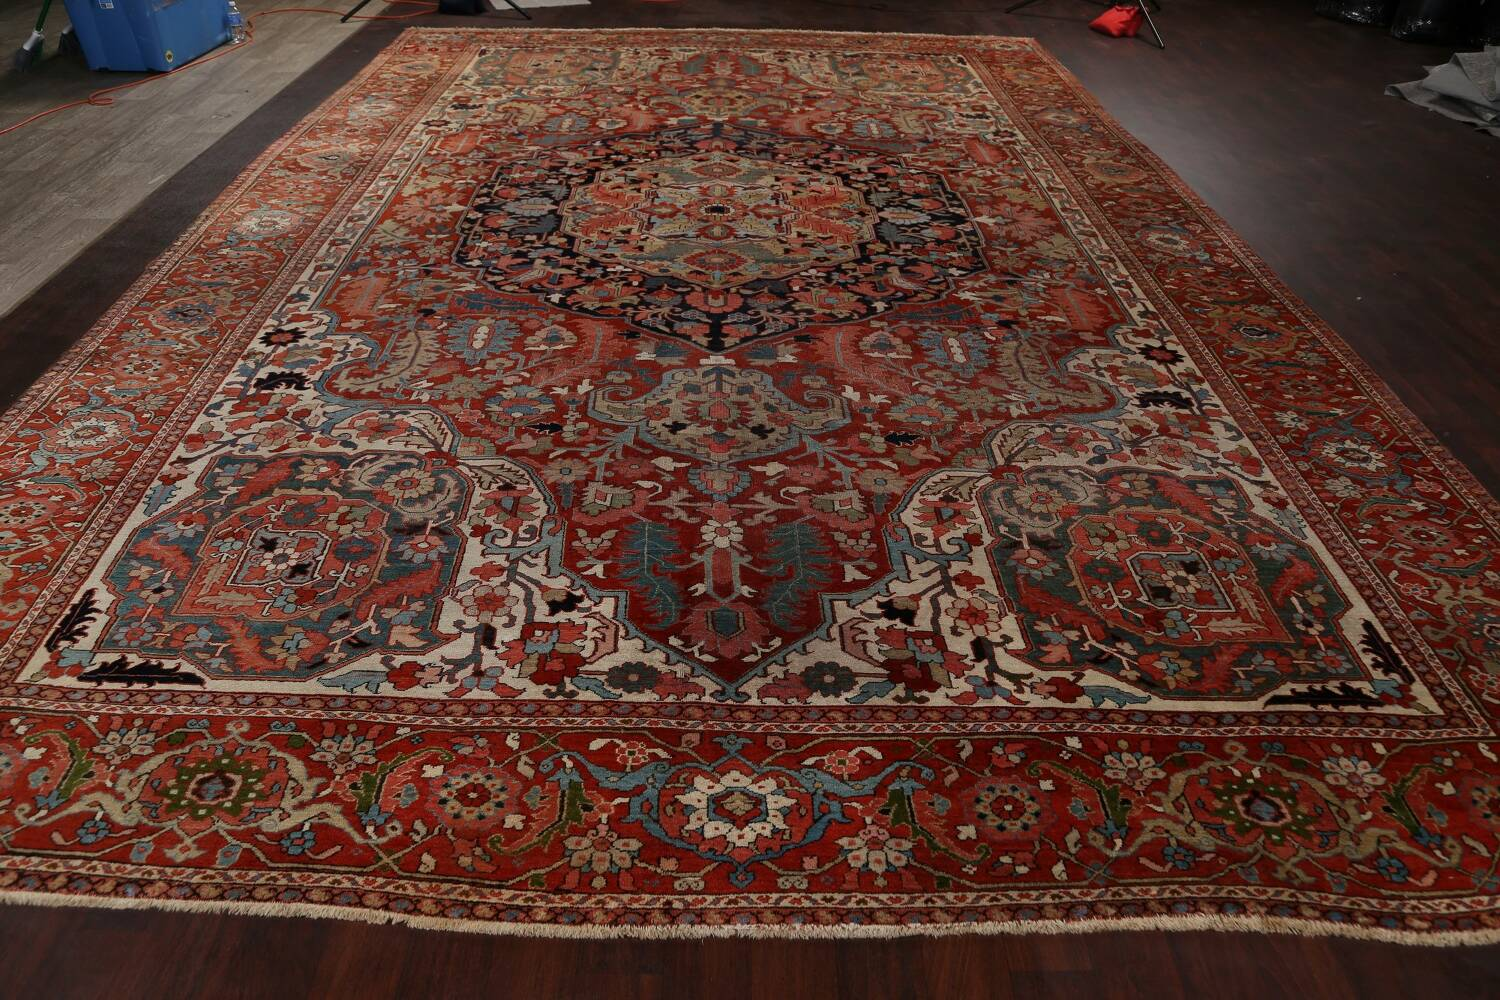 Antique Heriz Serapi Vegetable Dye Persian Area Rug 12x19 image 18